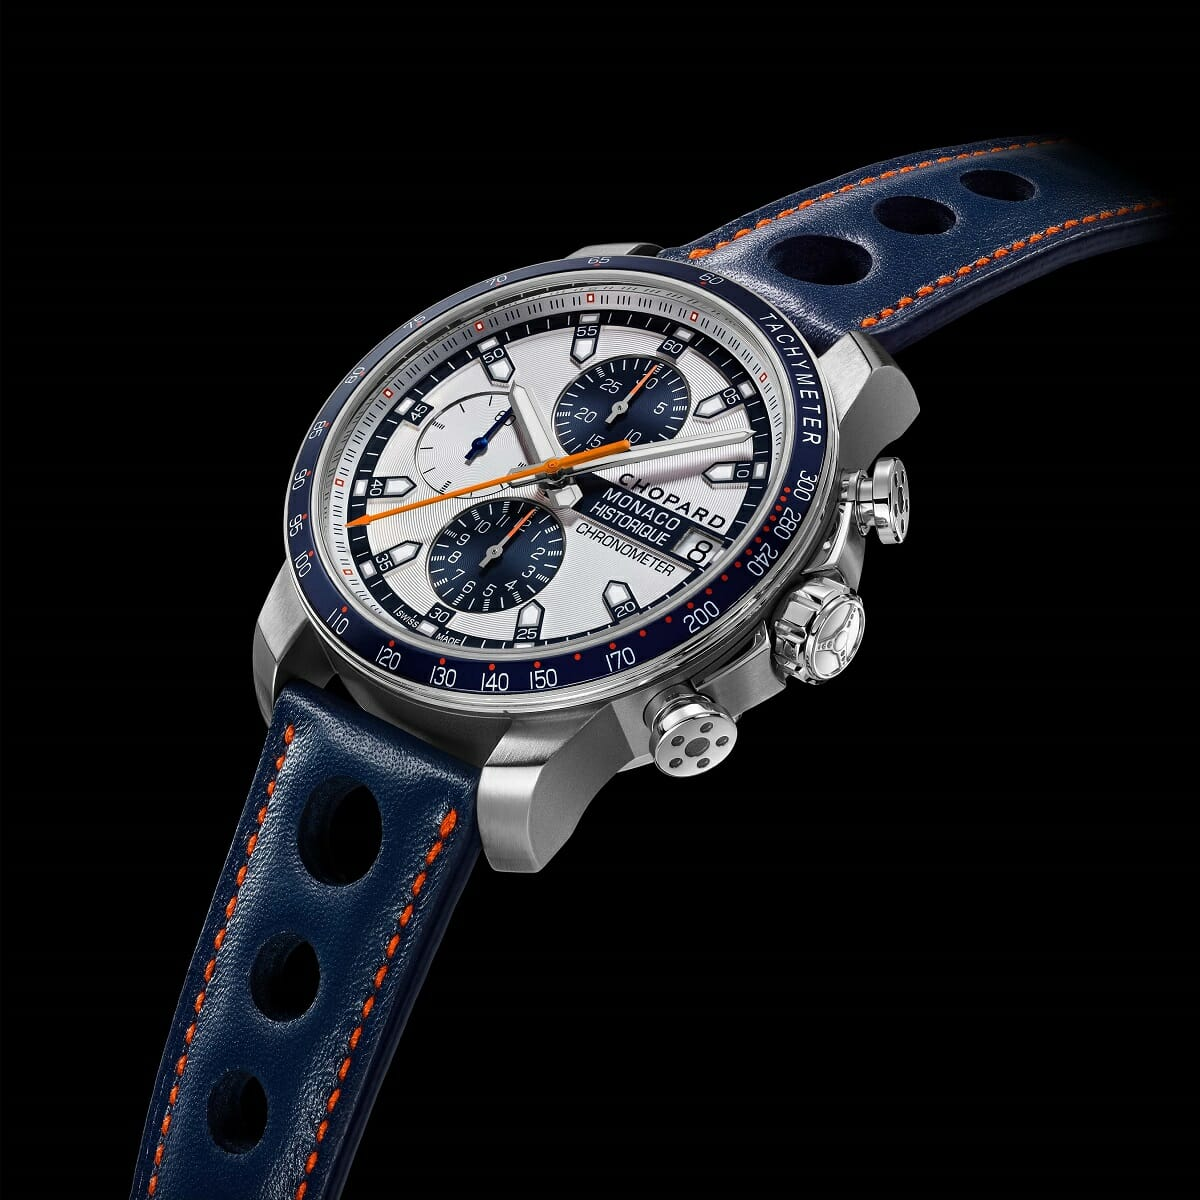 Chopard Watch Grand Prix 2018